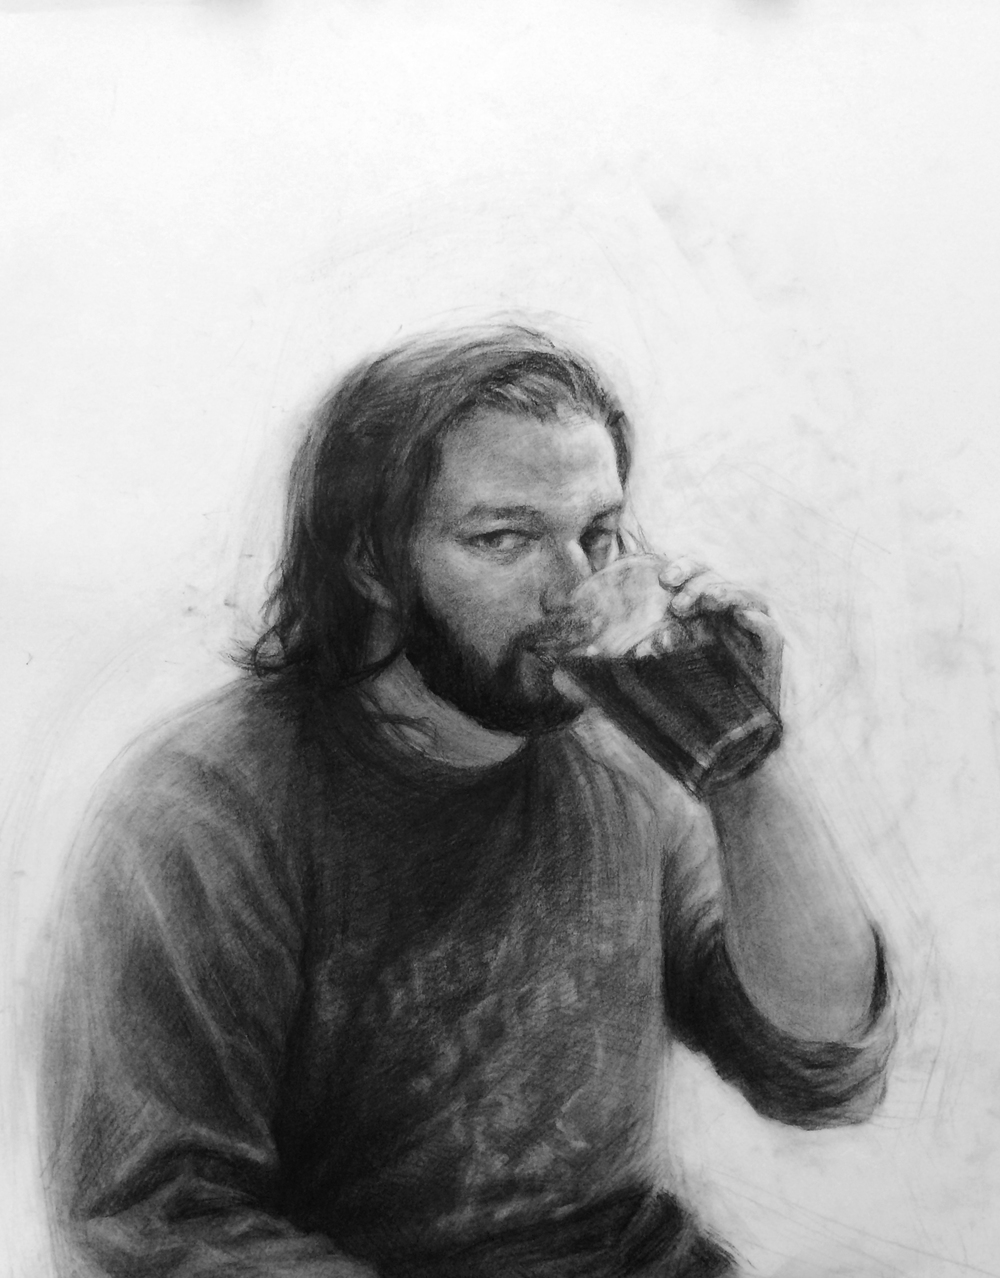 Matt Drinking Coffee / 19x24 / Charcoal / 2015